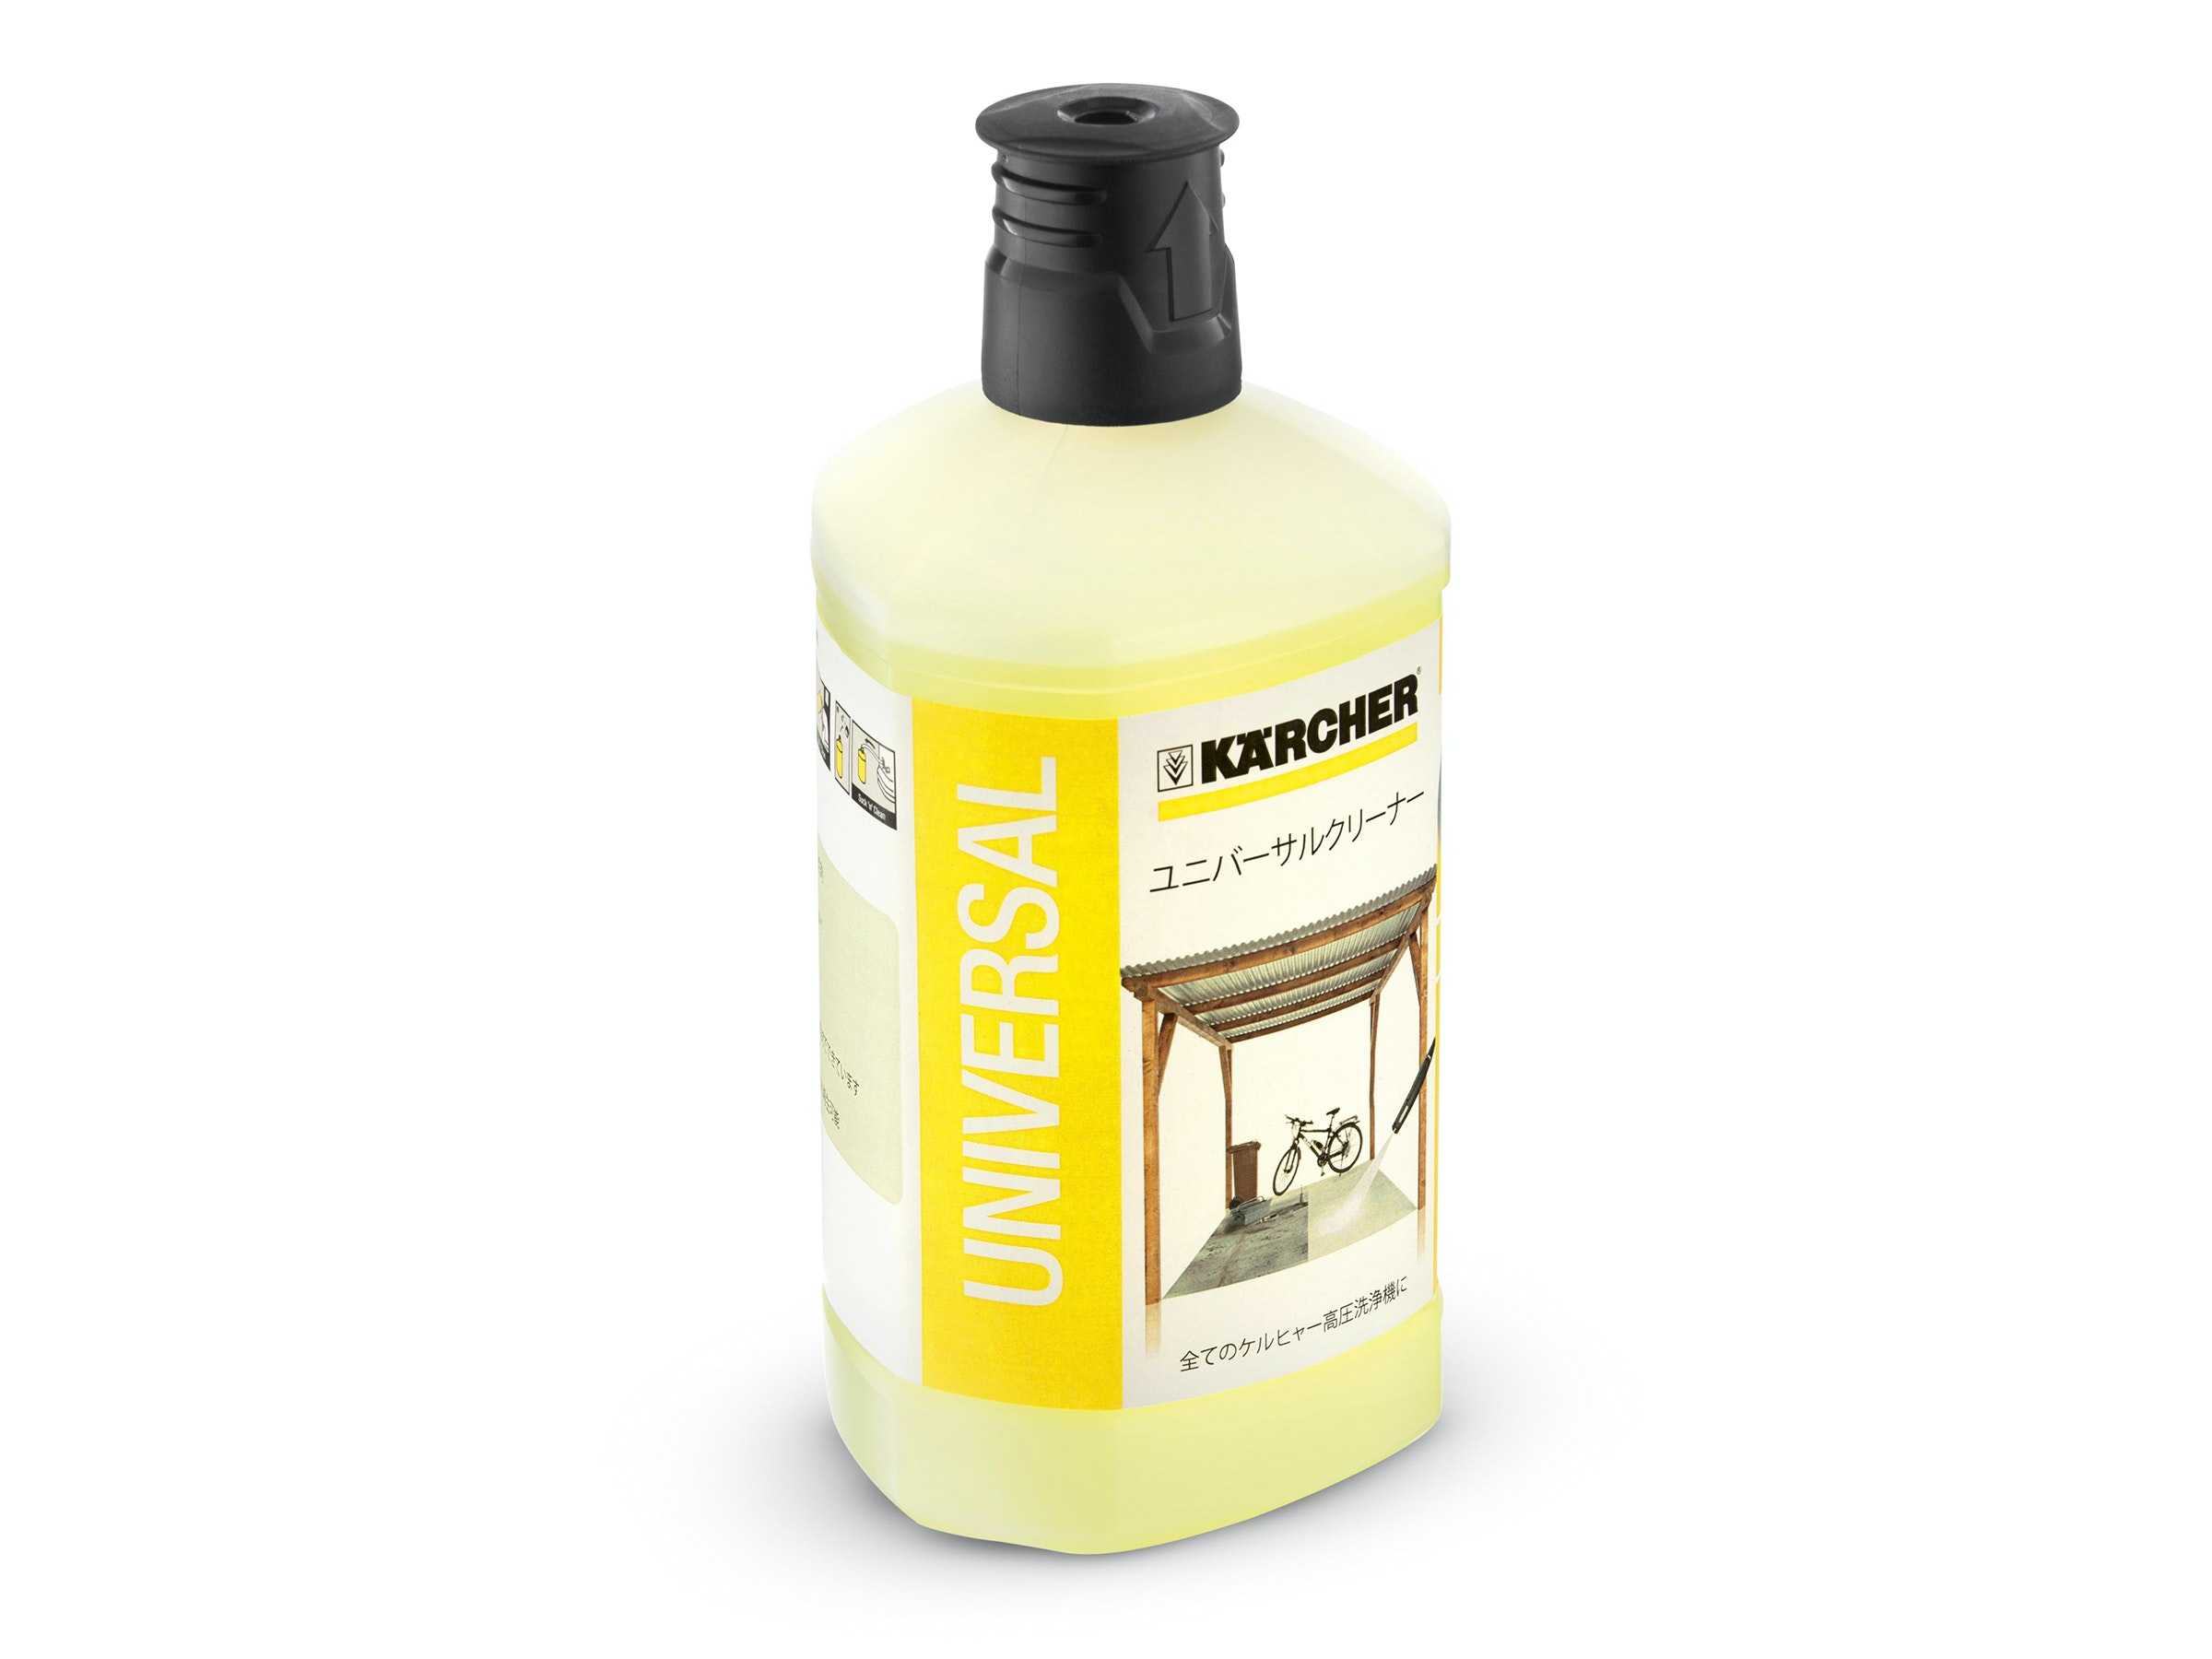 Karcher 3n1 Universal Cleaner 1L